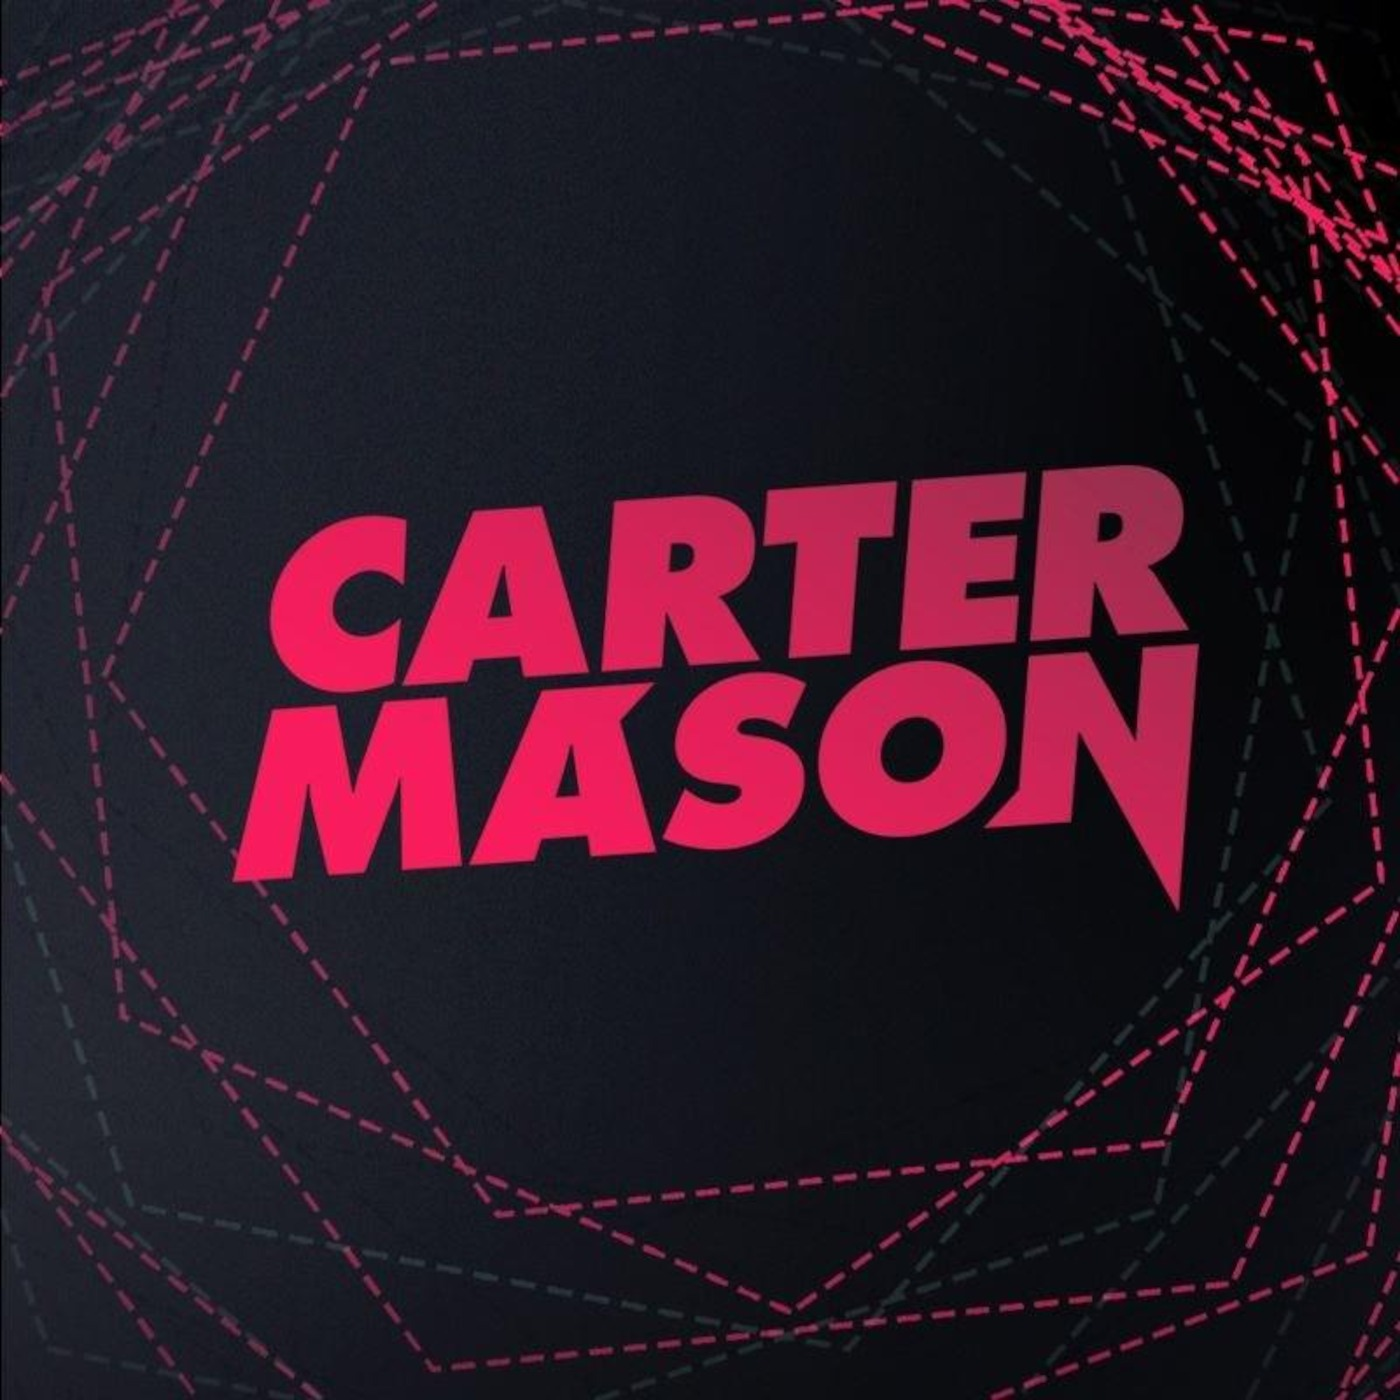 Carter Mason's Podcast